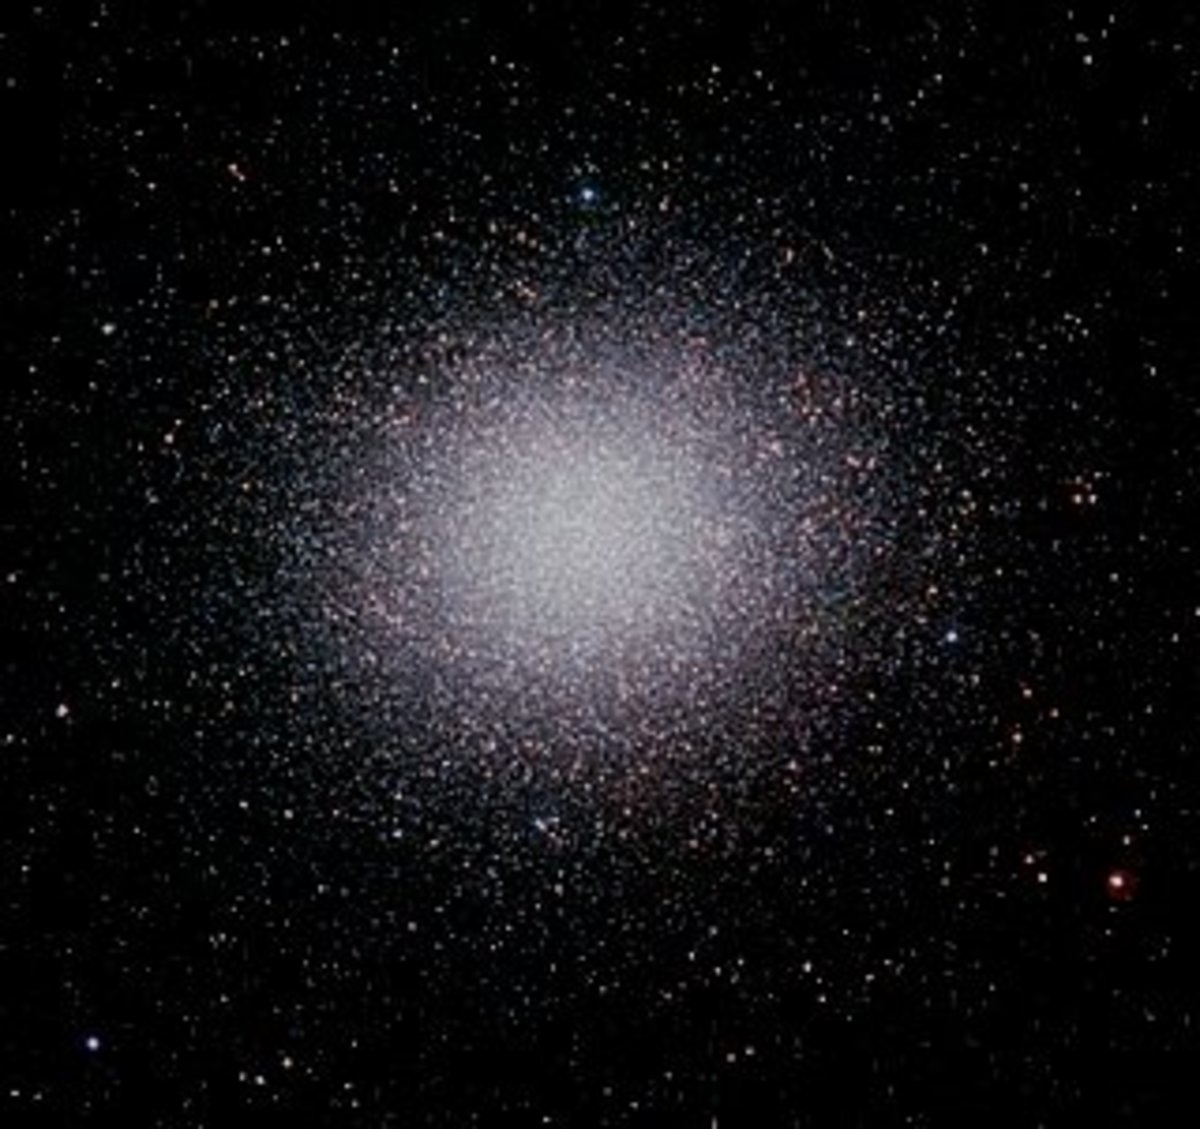 Omega Centauri - Giant globular cluster or dwarf galaxy attending the Milky way?